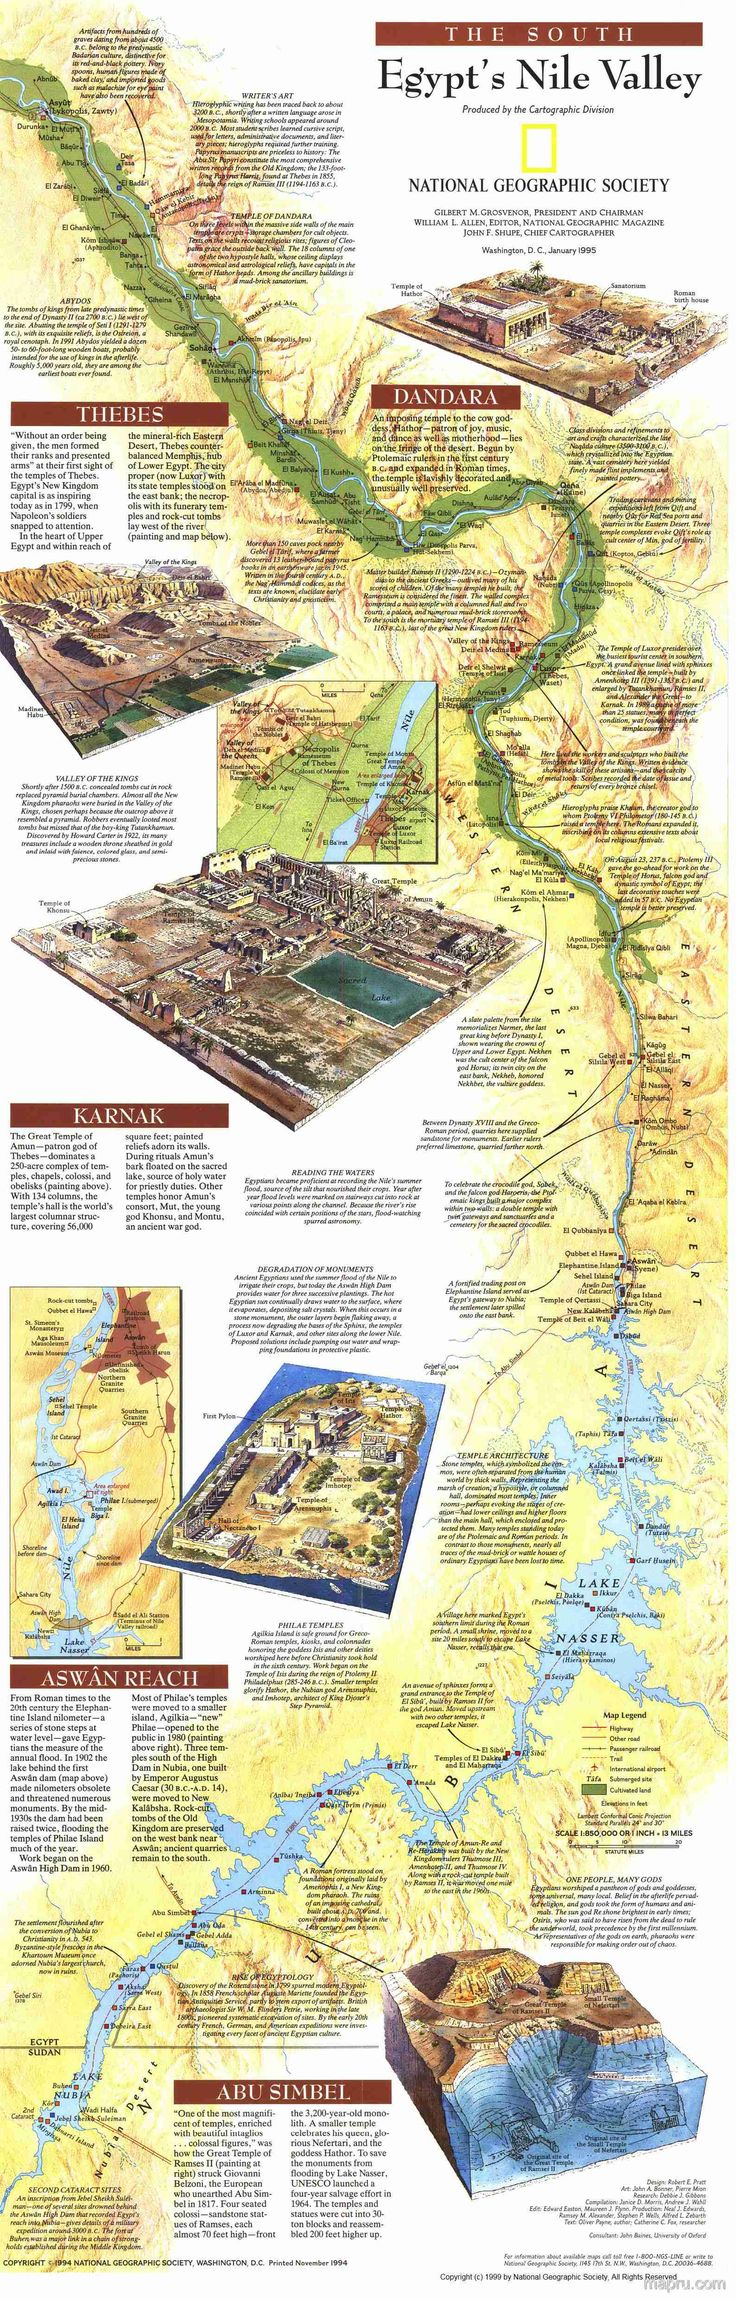 Egypt's Nile Valley Map - National Geographic